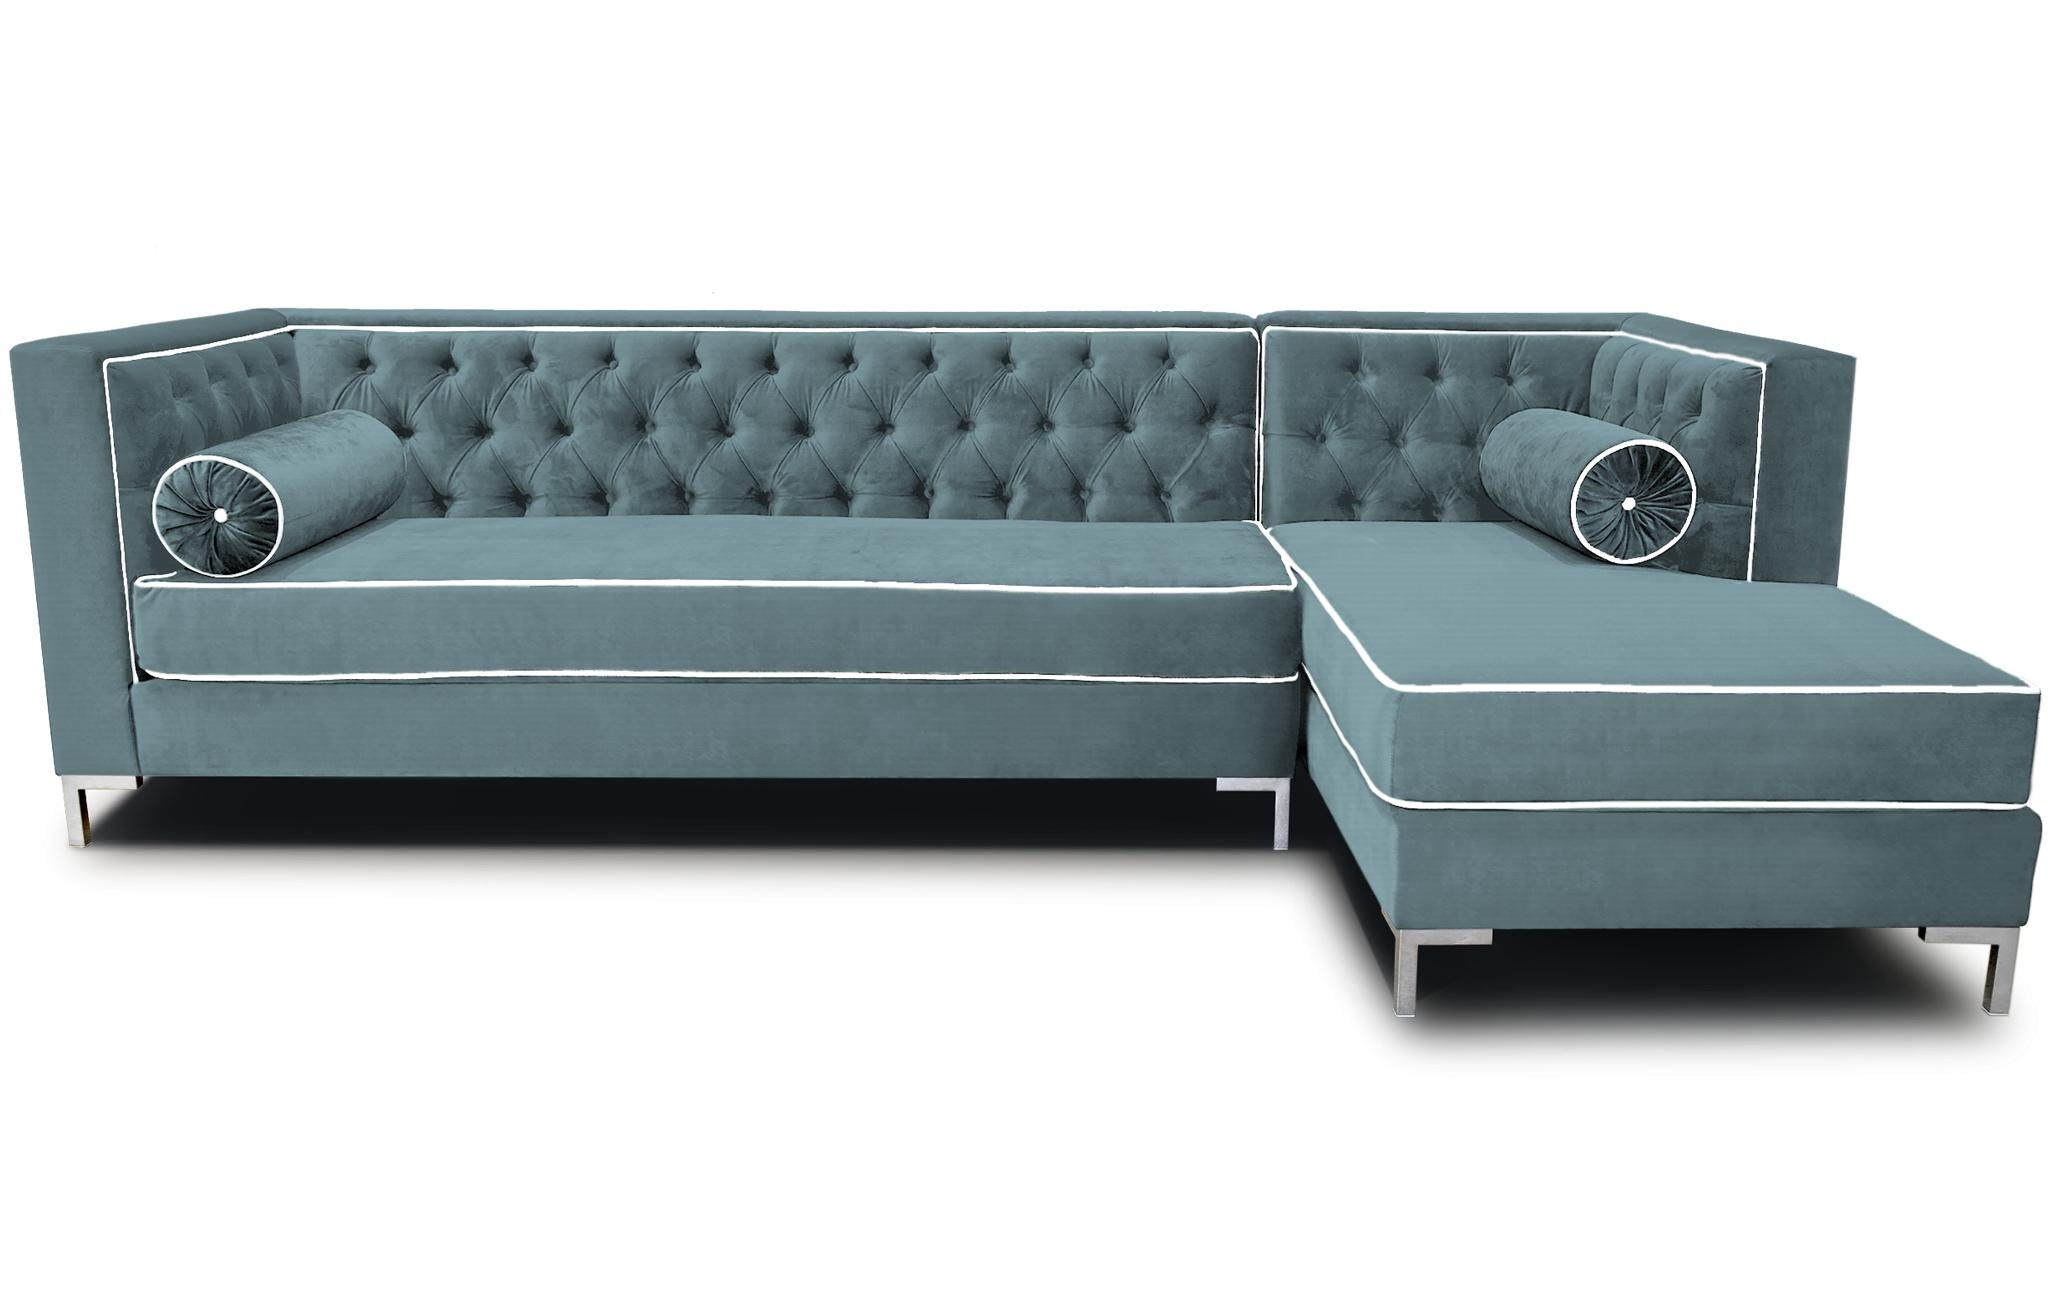 Sofas Center : 41 Stunning Tufted Sleeper Sofa Photo Design Tufted Intended For Ava Tufted Sleeper Sofas (Image 9 of 20)